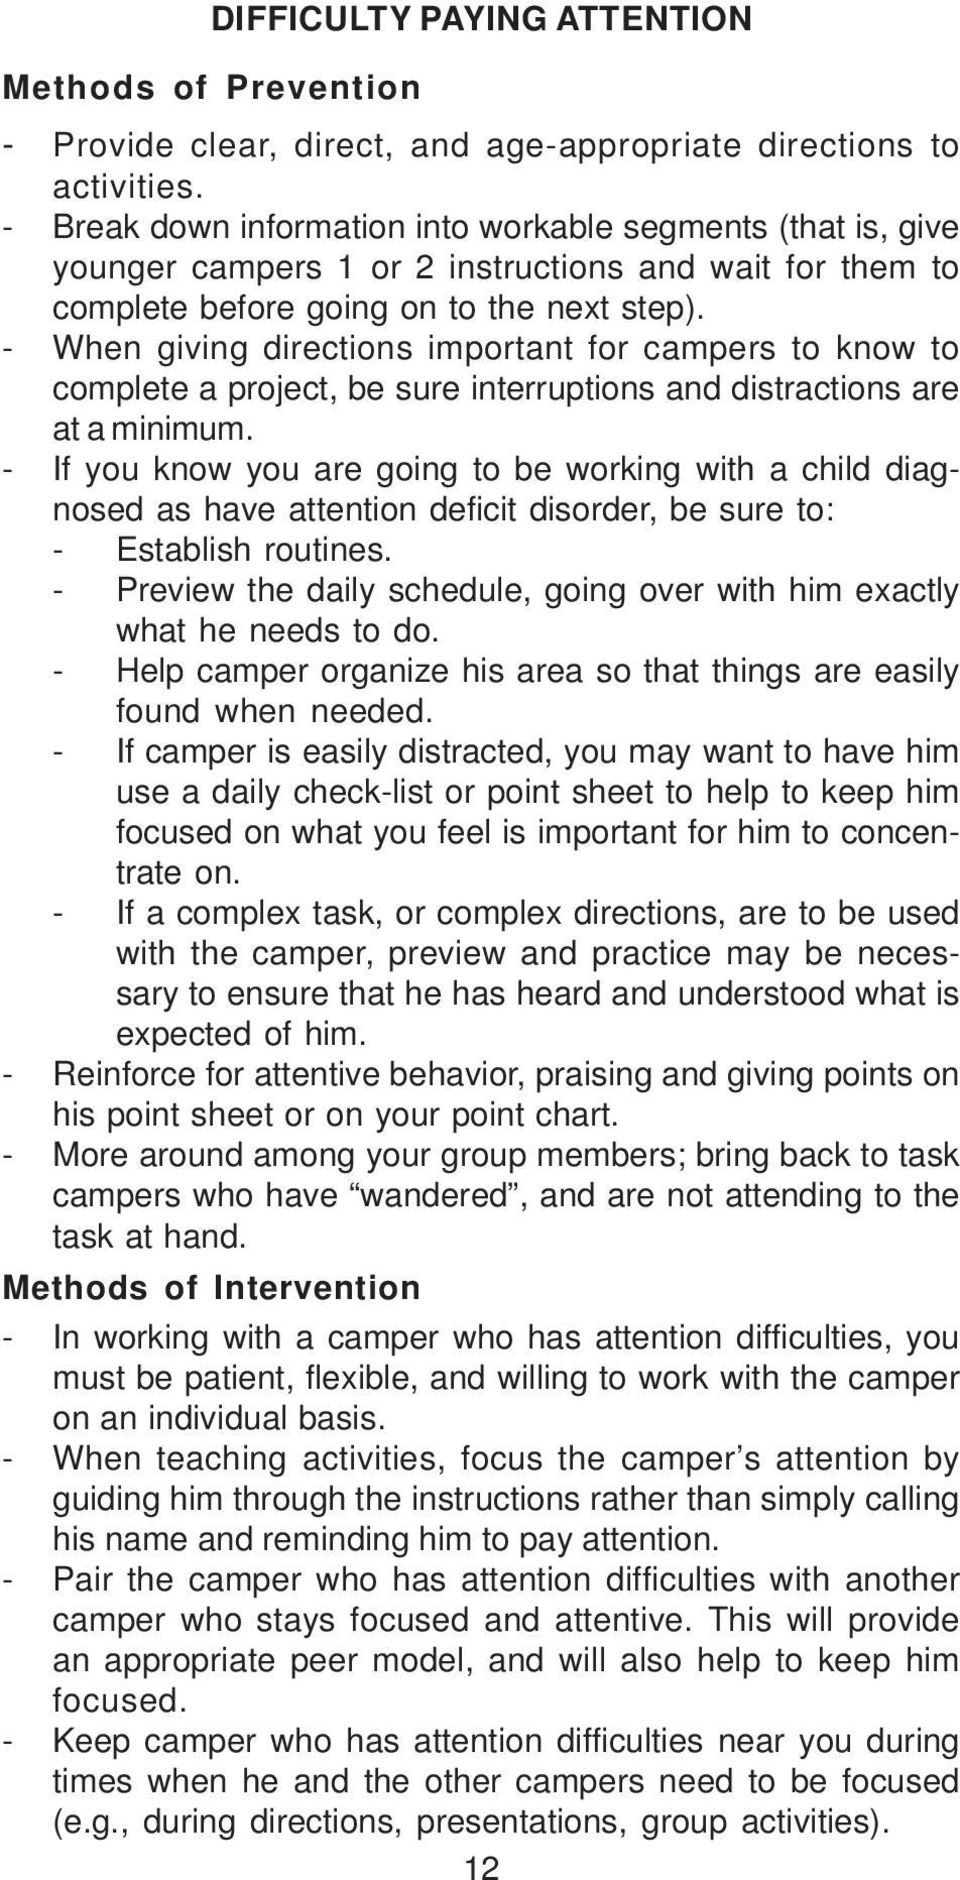 - When giving directions important for campers to know to complete a project, be sure interruptions and distractions are at a minimum.